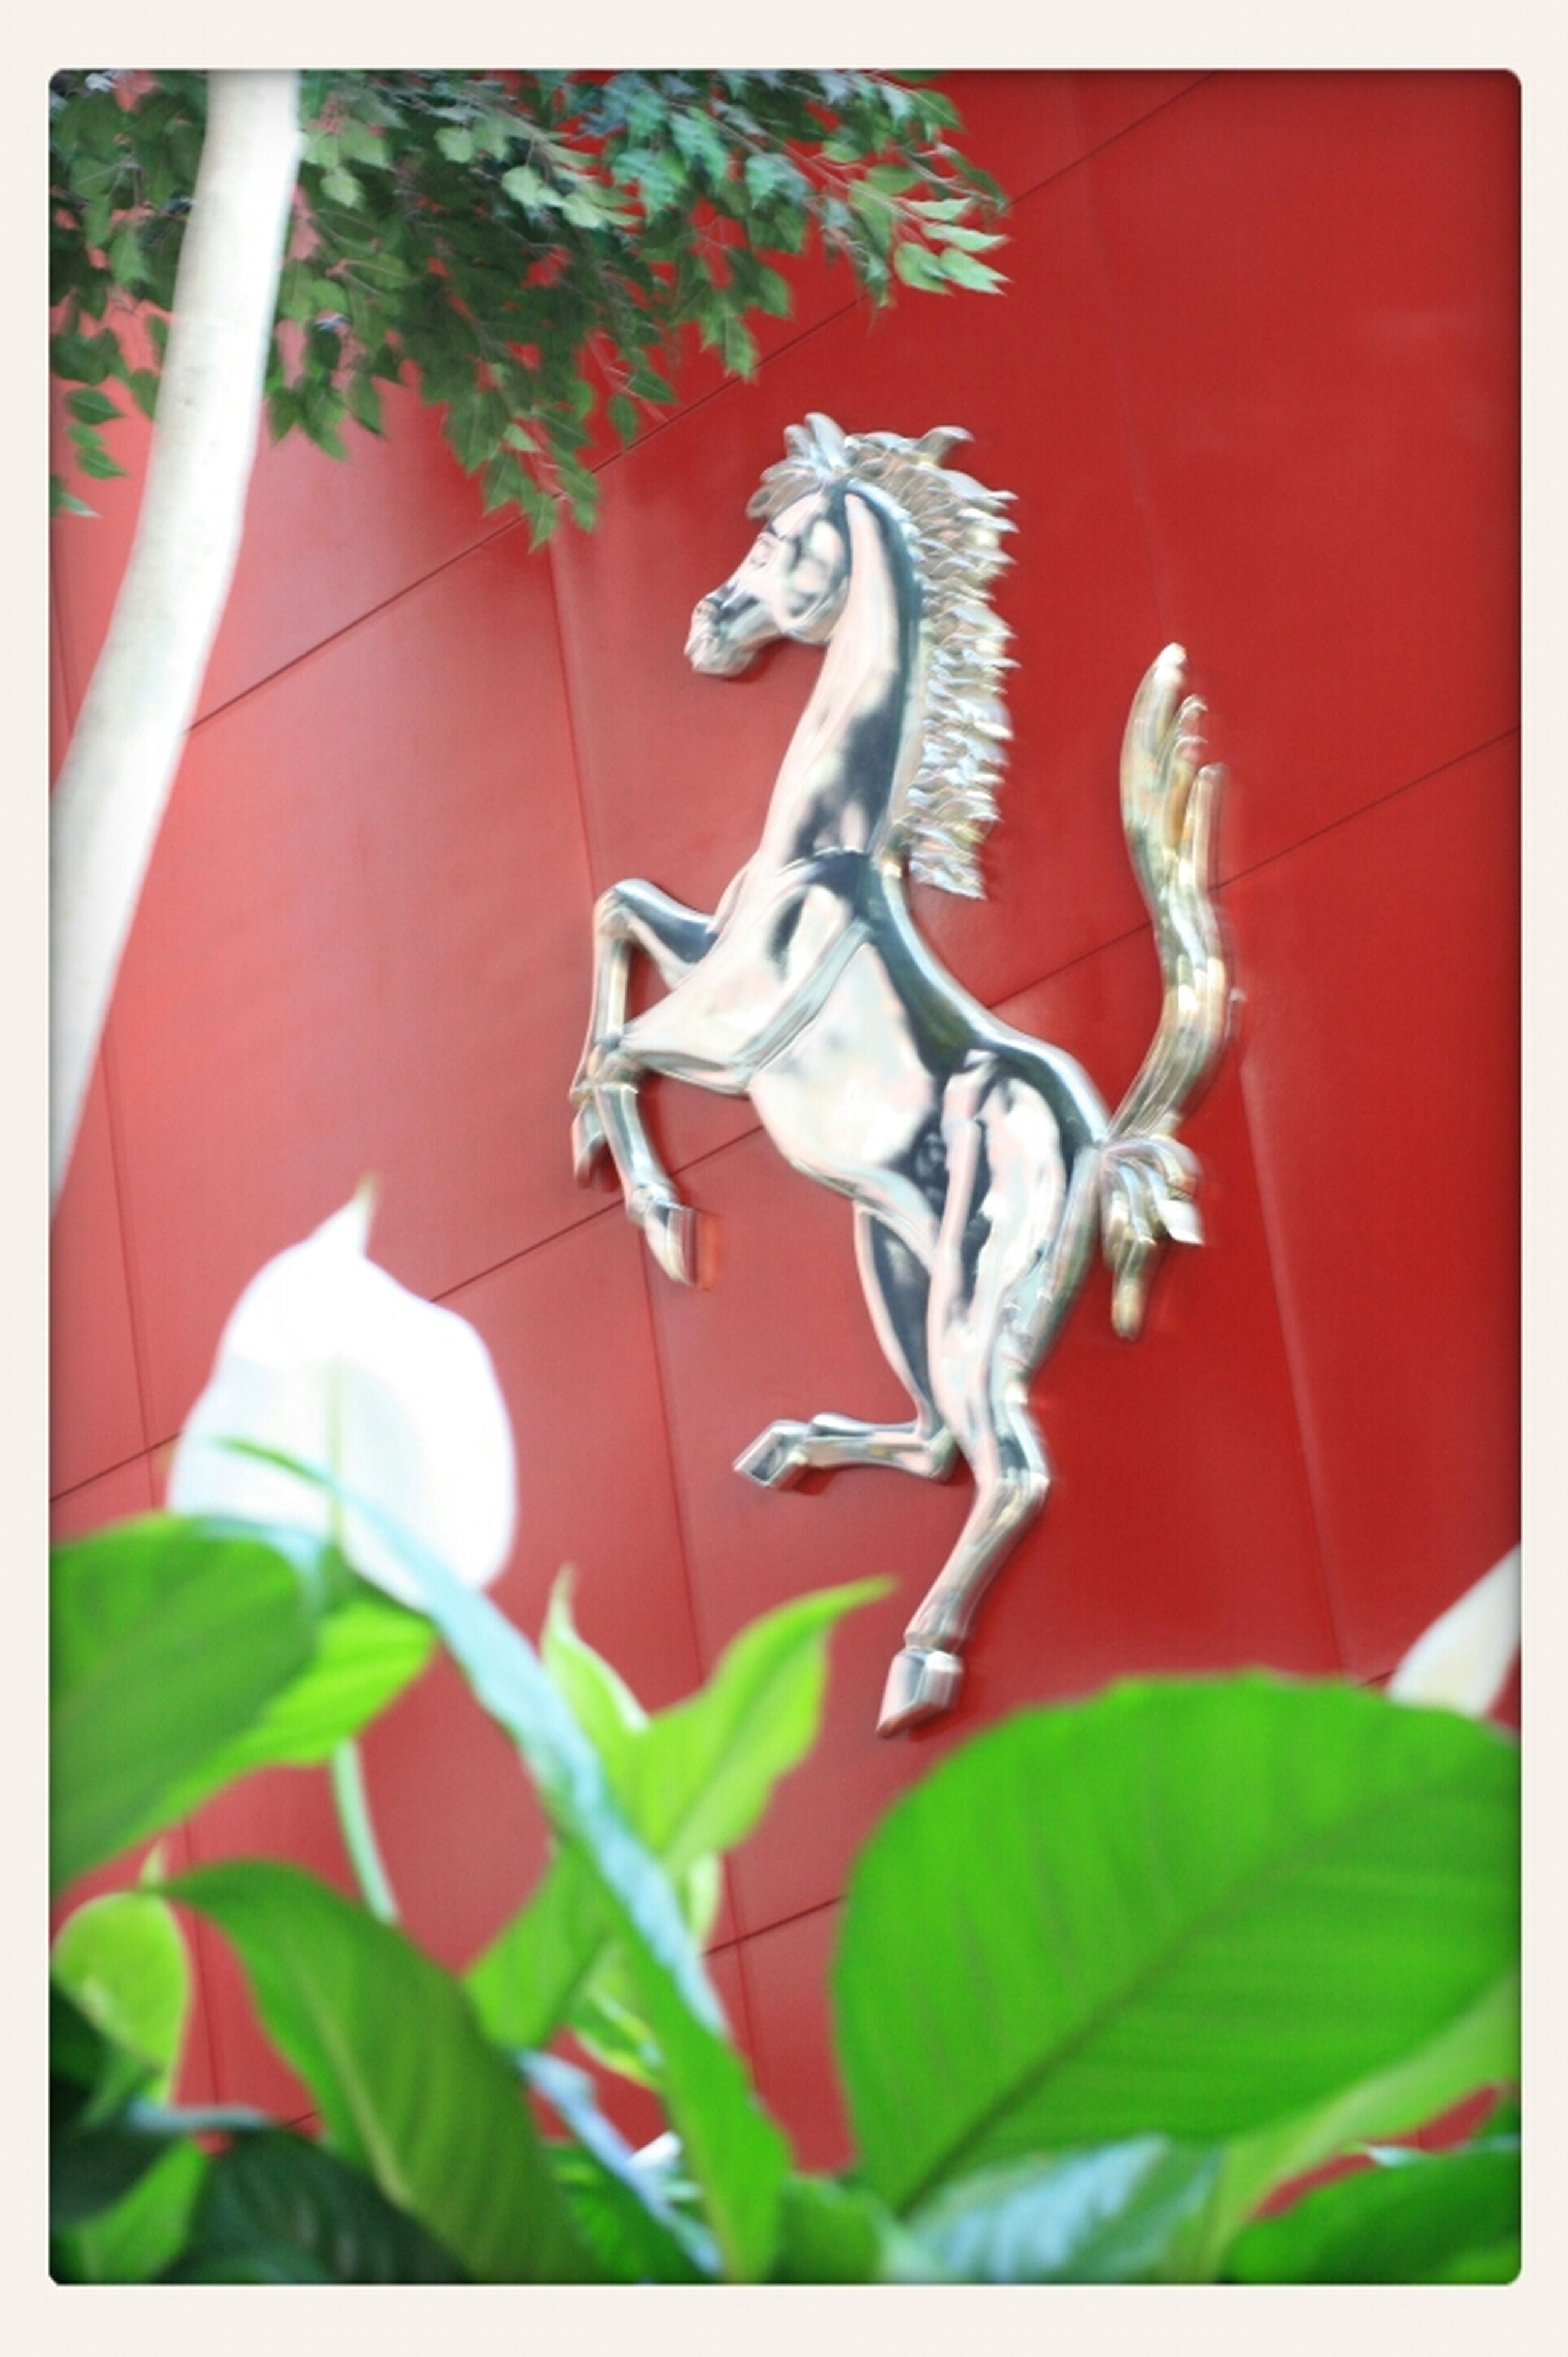 transfer print, auto post production filter, indoors, art and craft, art, creativity, animal representation, red, human representation, statue, sculpture, close-up, animal themes, day, wall - building feature, no people, sunlight, one animal, plant